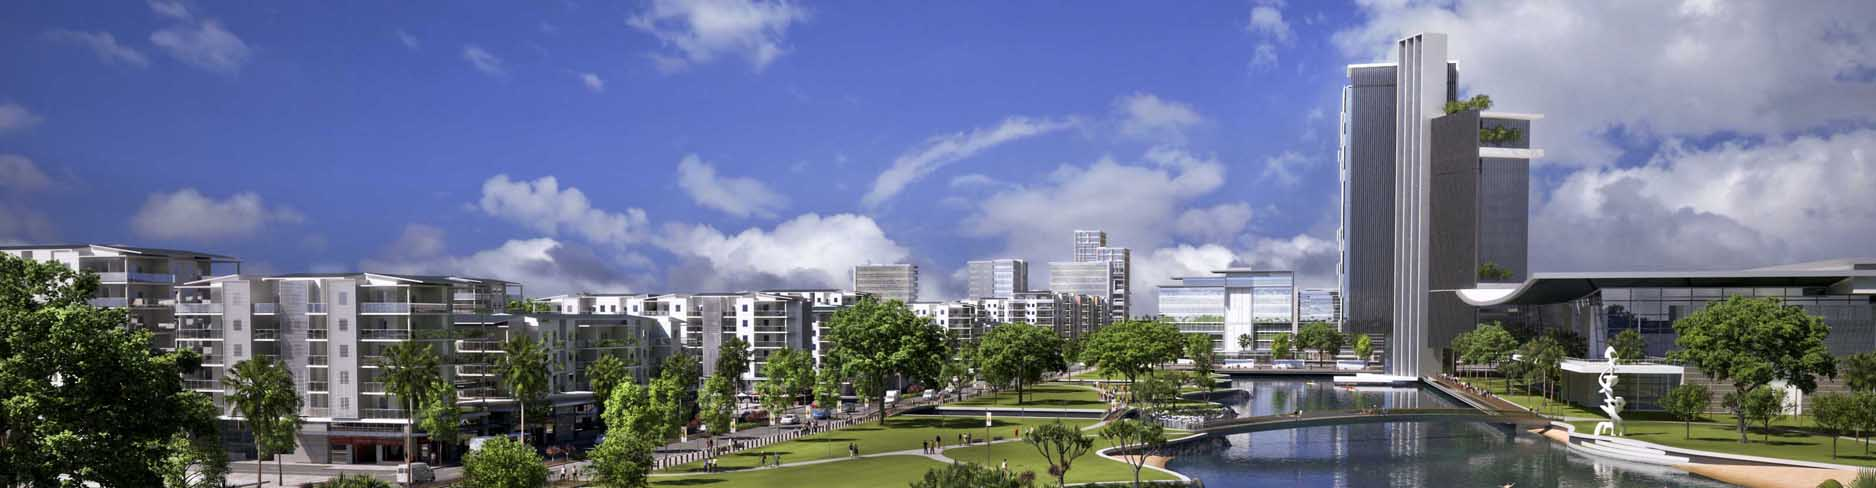 Artists Impression of Maroochydore City Centre